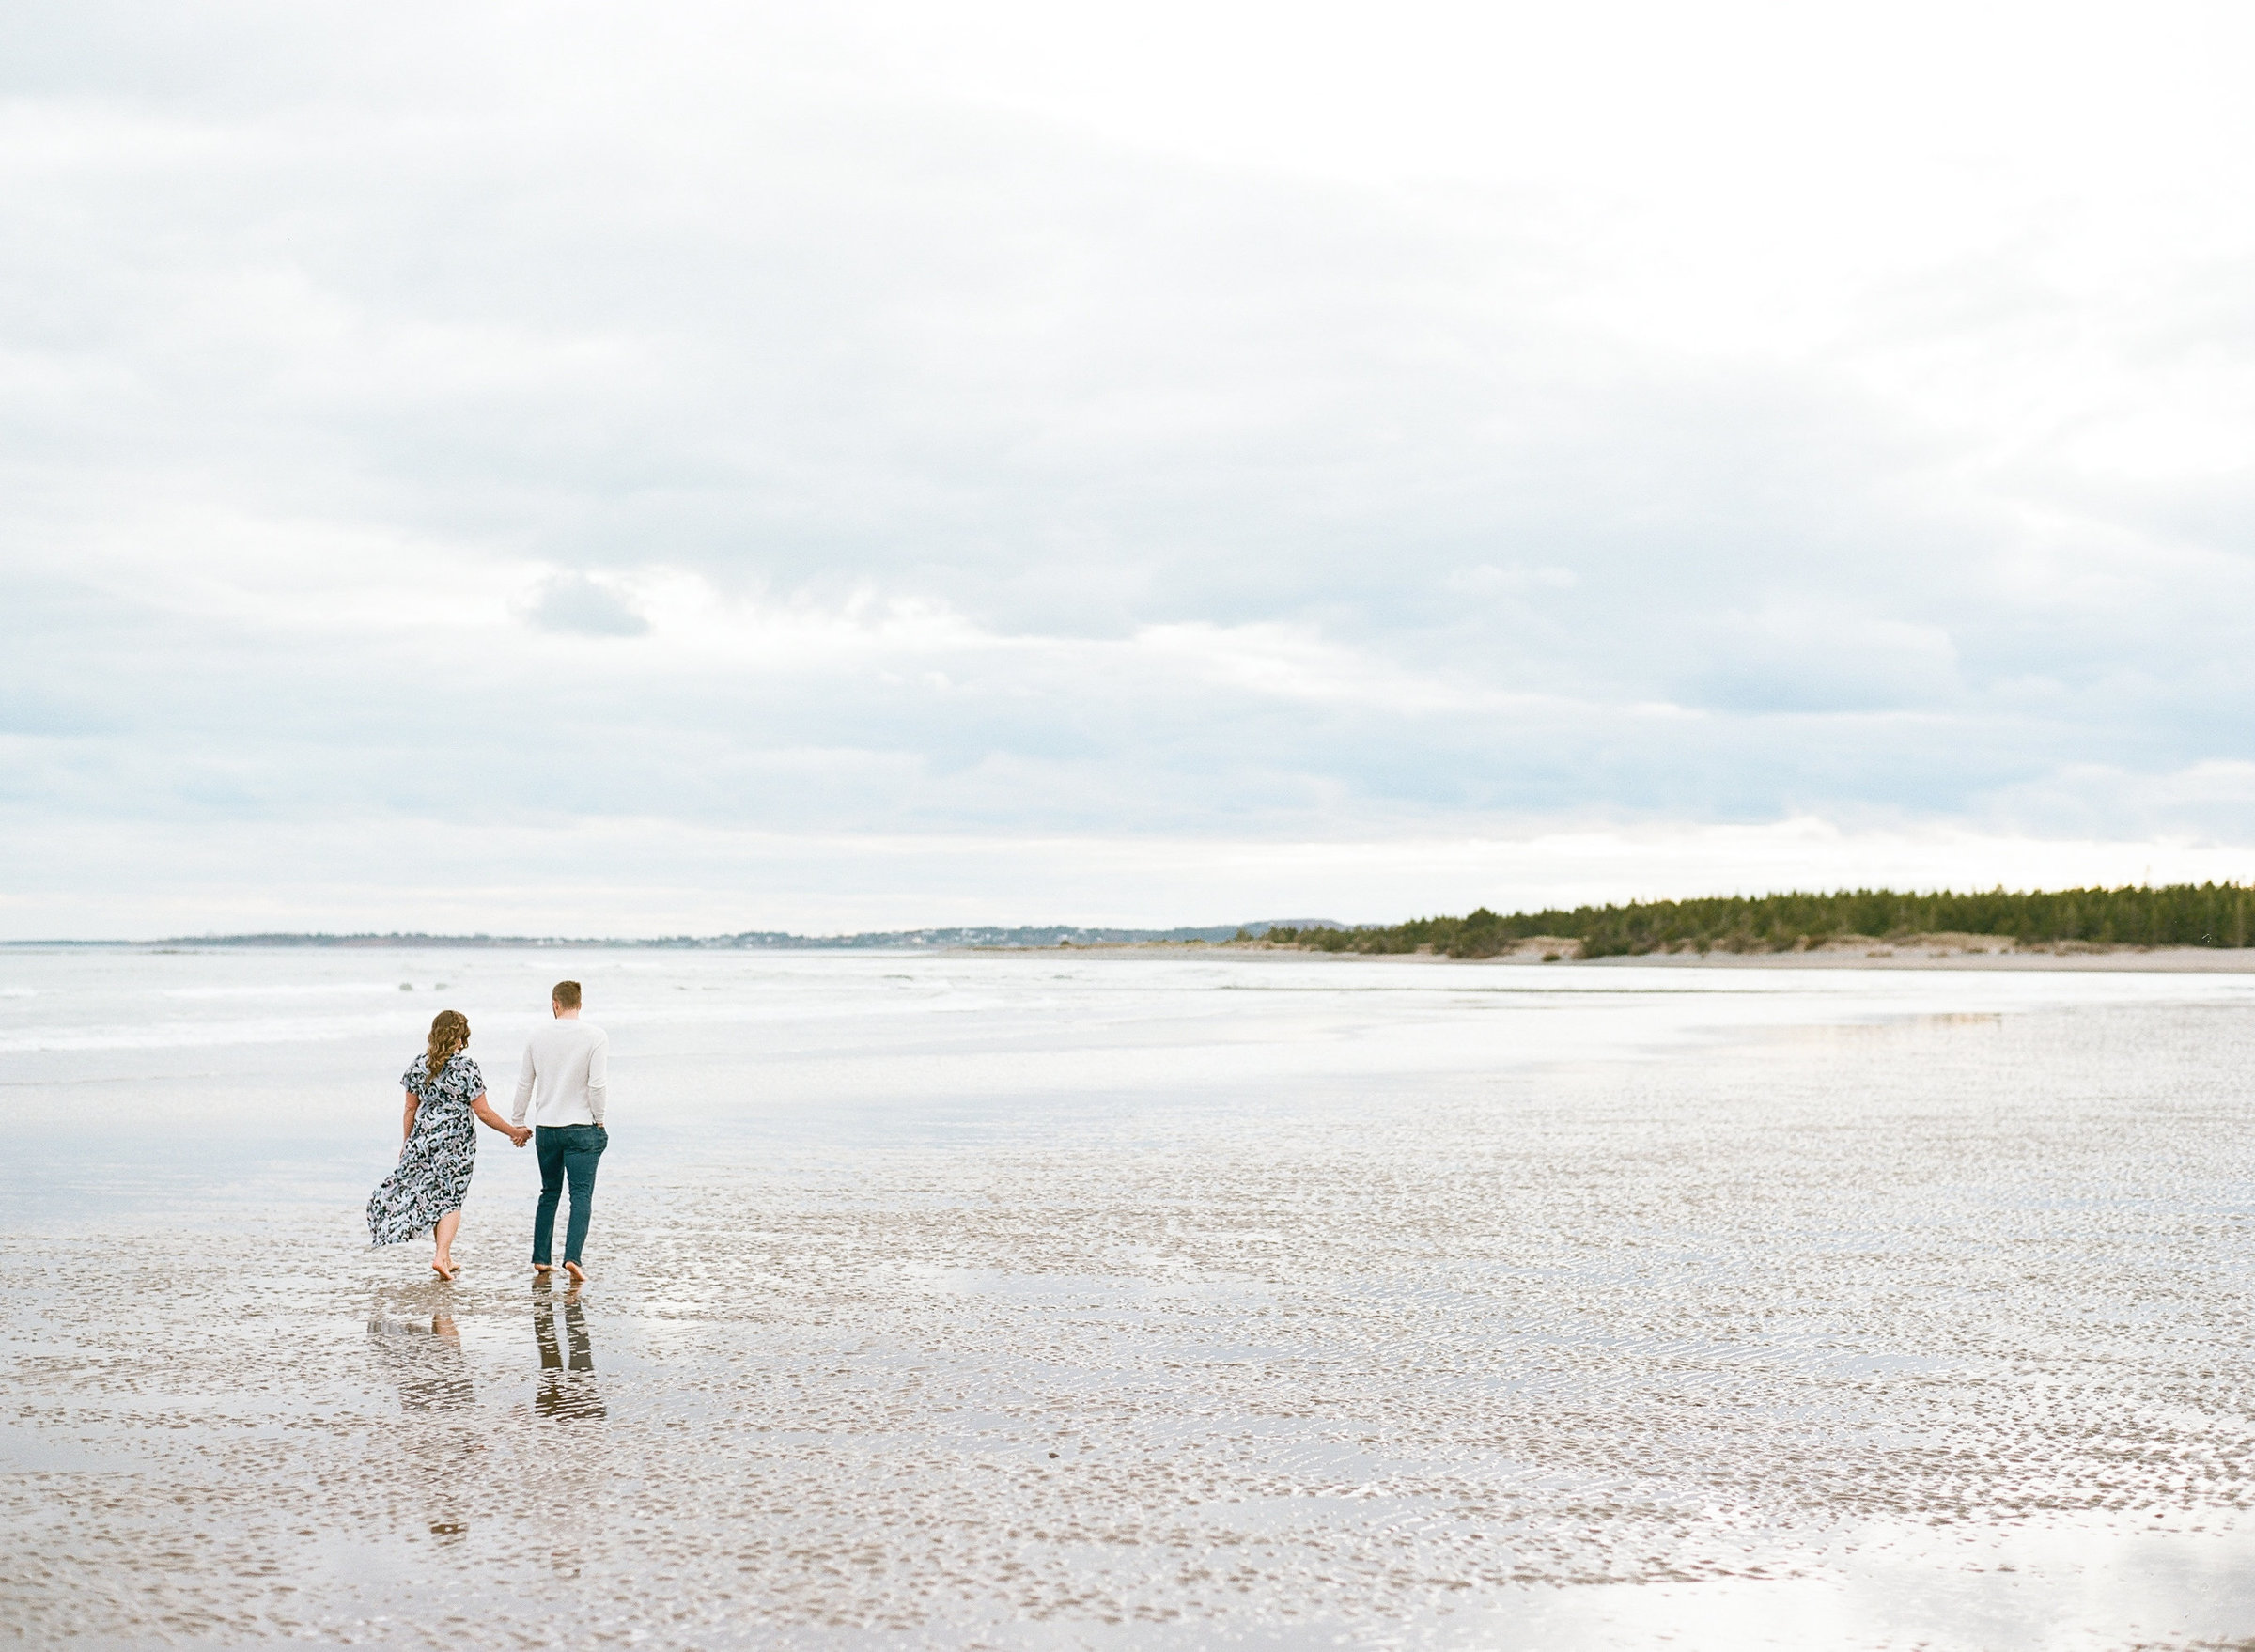 Jacqueline Anne Photography - Akayla and Andrew -, Halifax Wedding Photographer Jacqueline Anne captured on Lawrencetown Beach